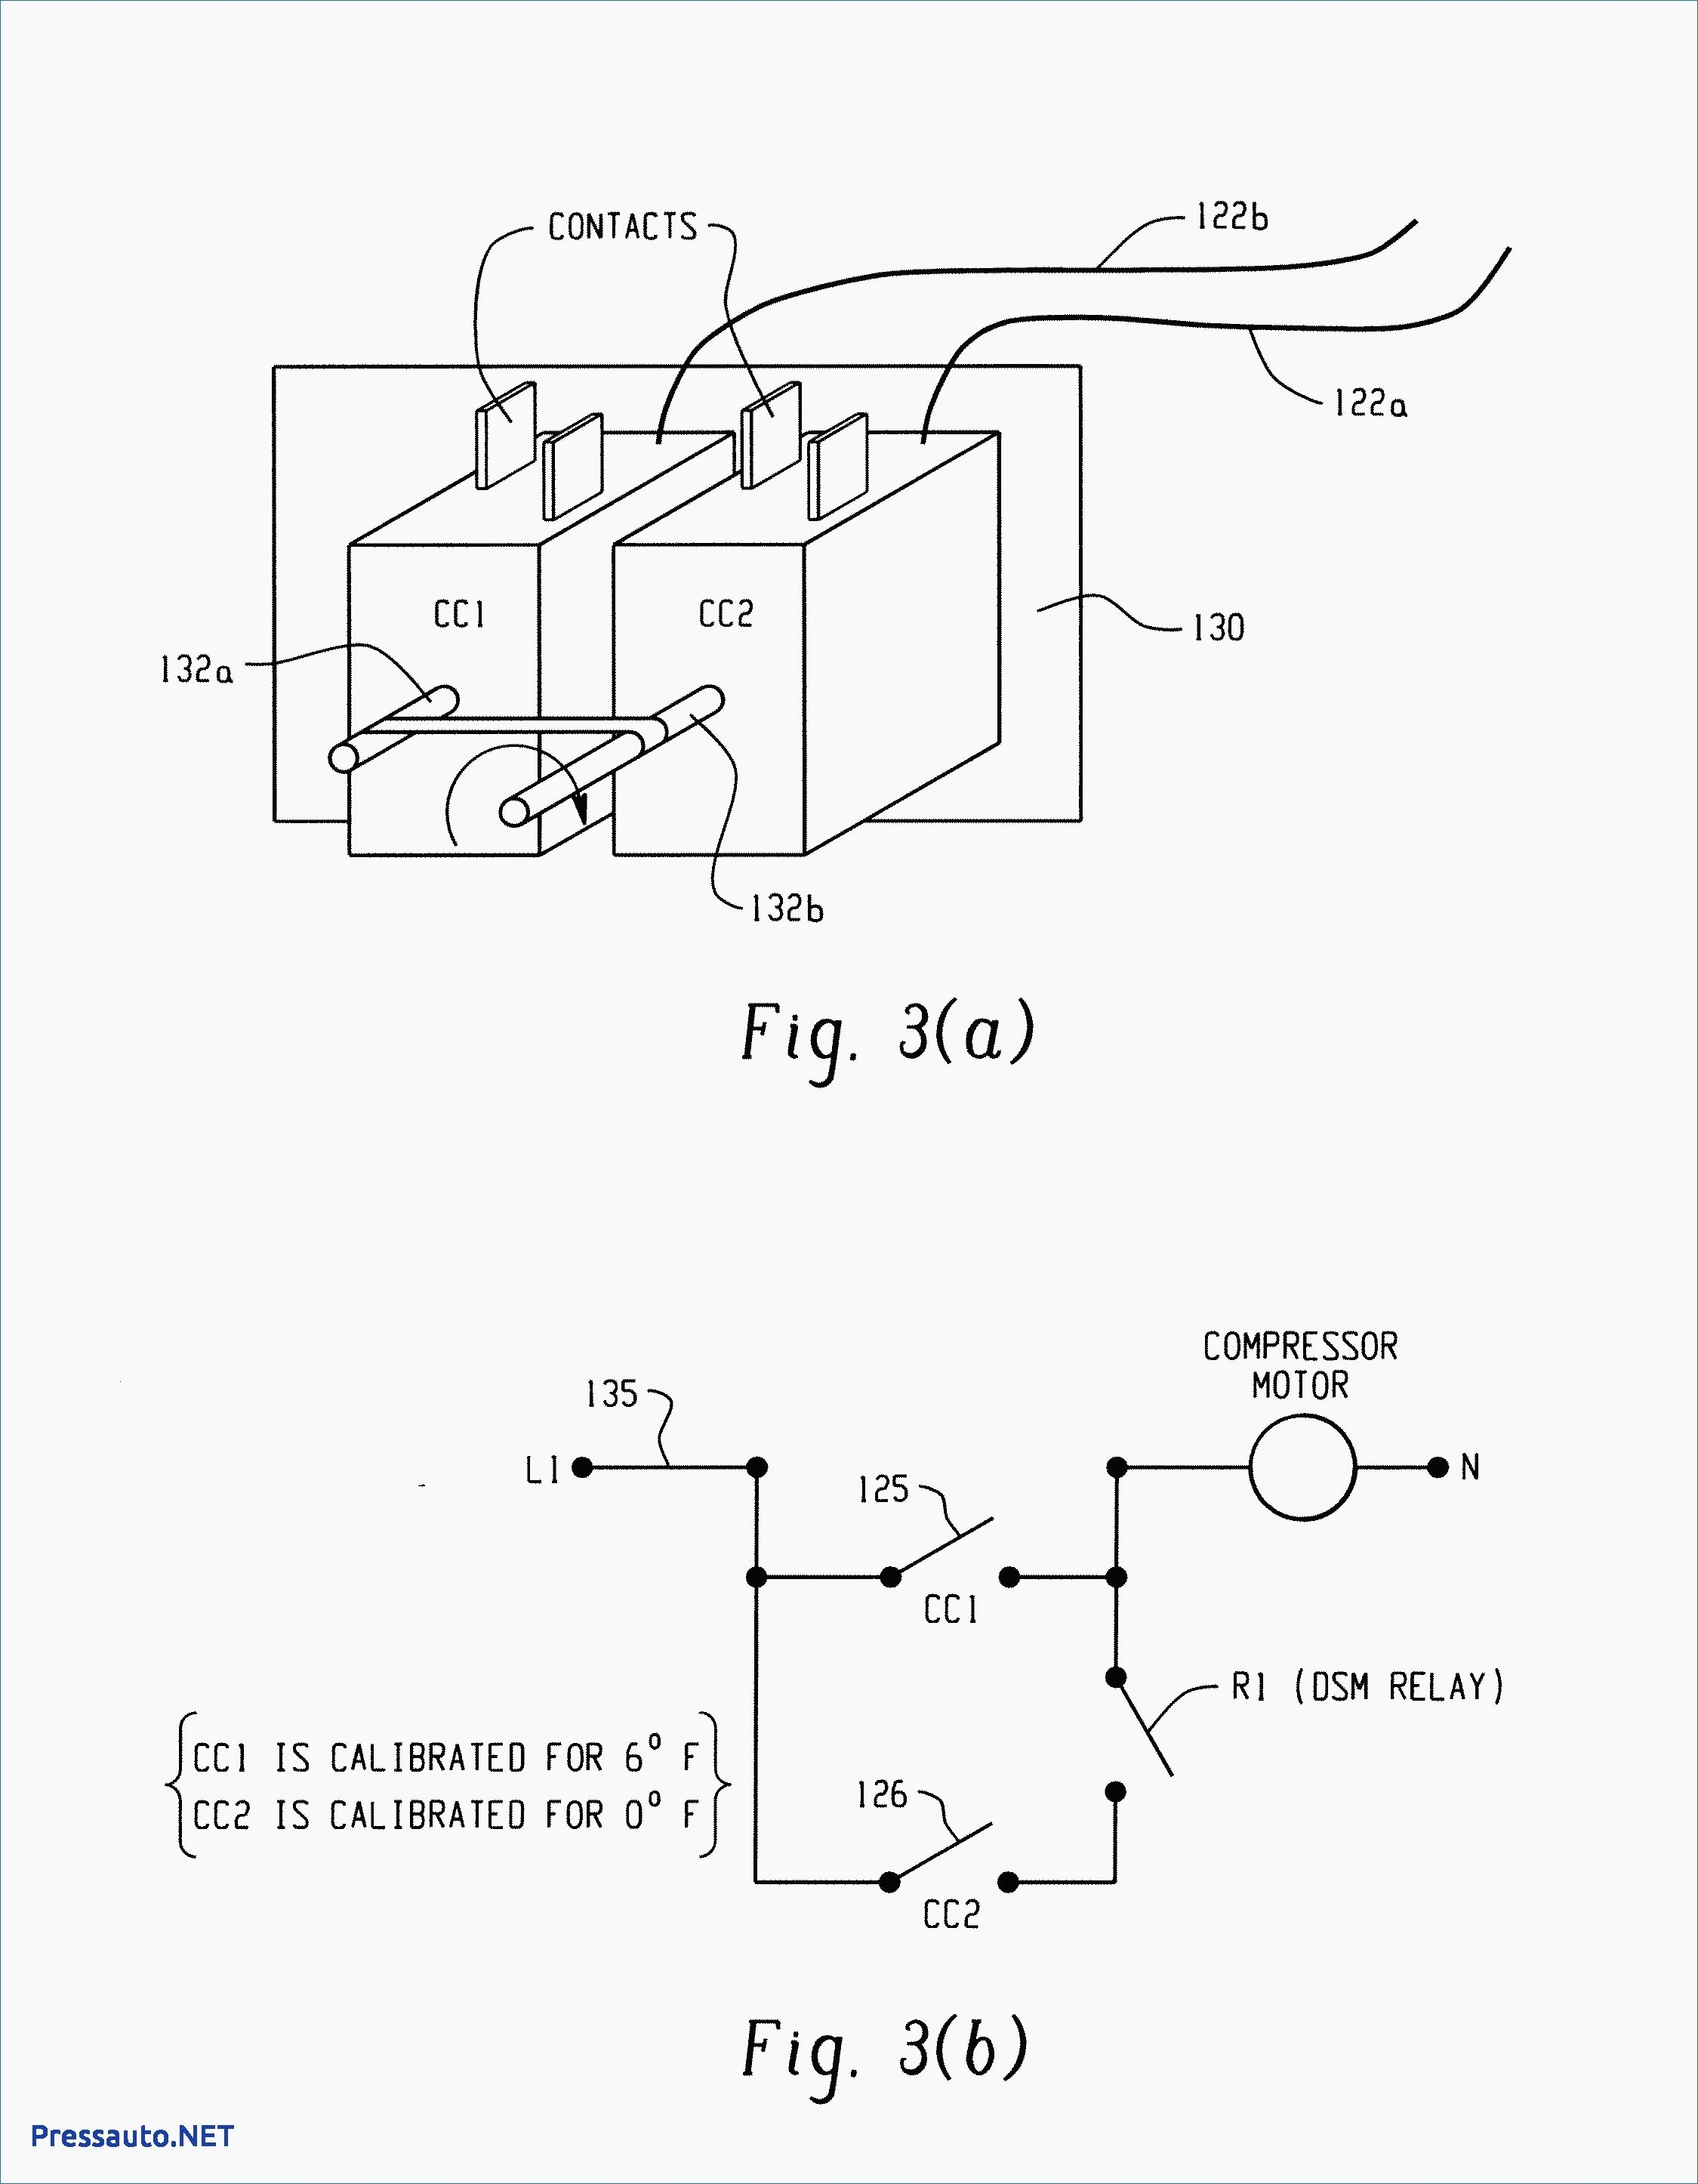 √ rtd pt100 3 wire wiring diagramDefrost Termination Fan Delay Diagram Free Download Wiring Diagrams #11